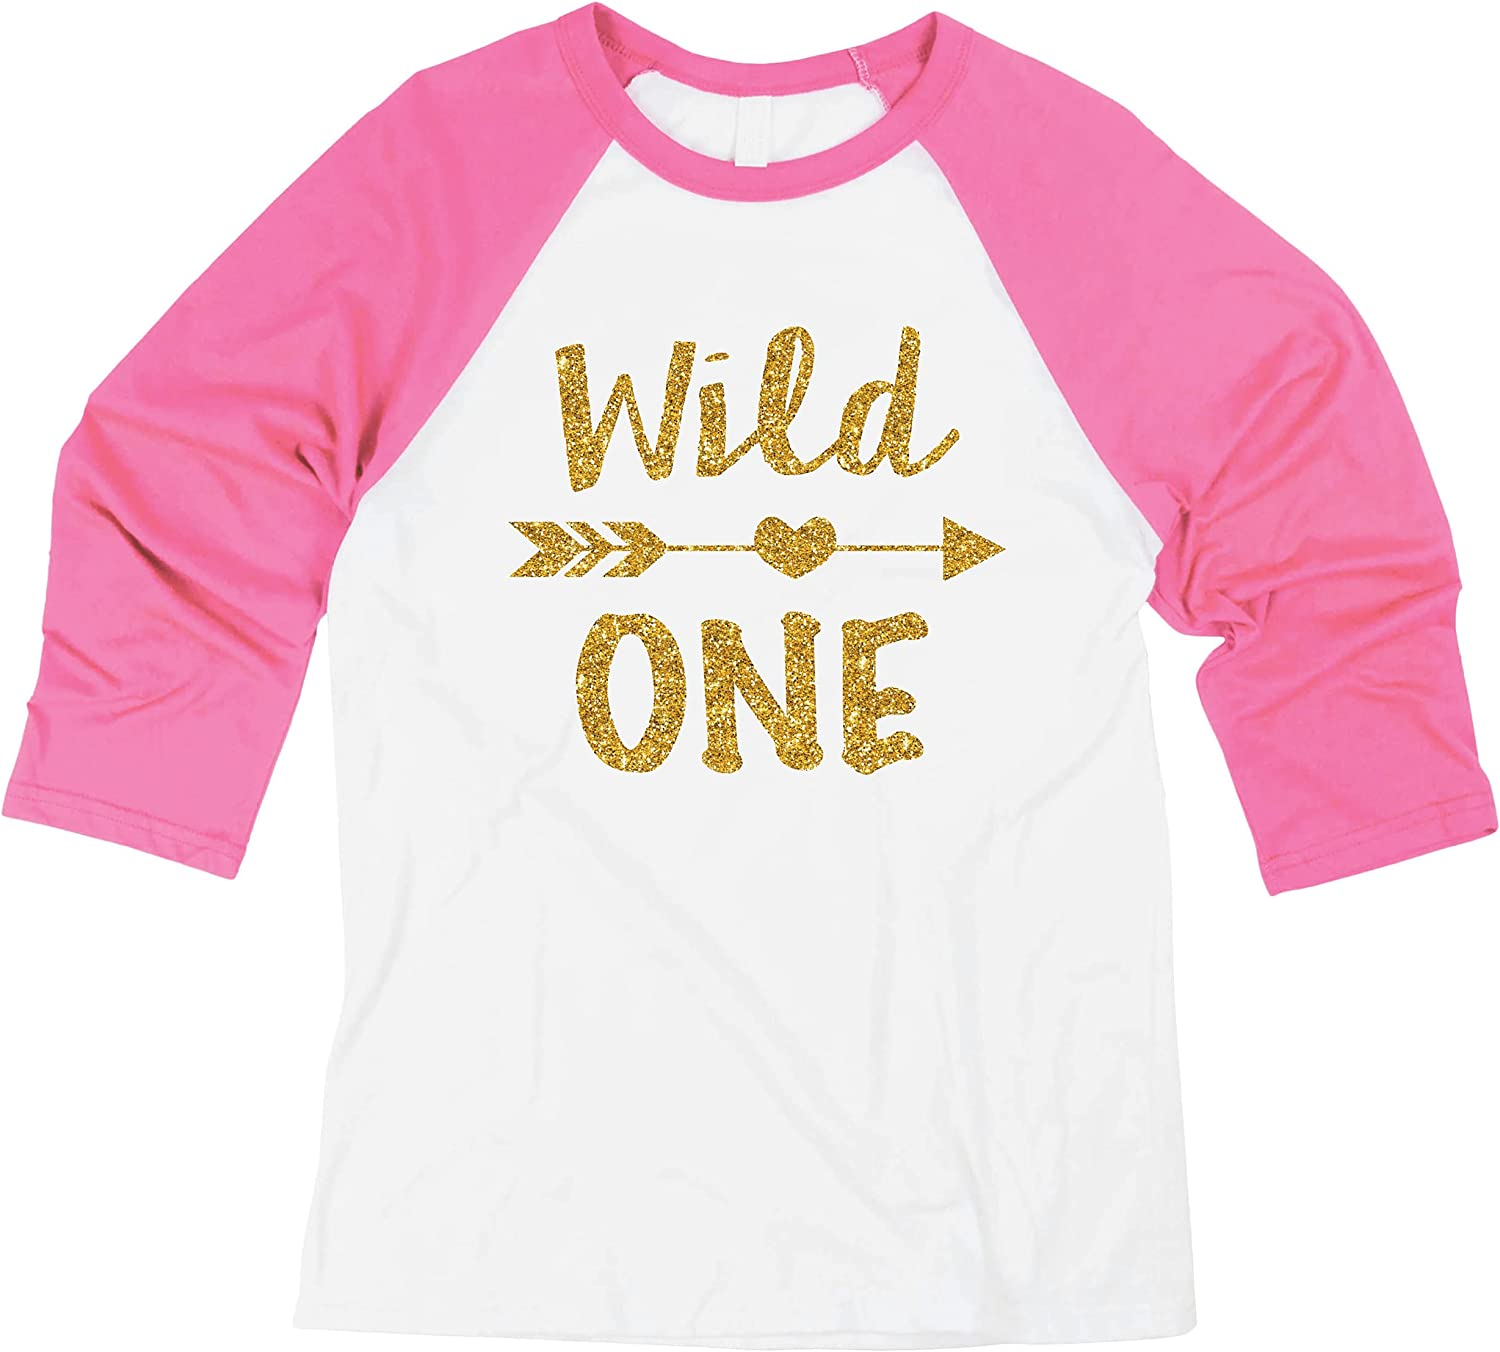 Bump and Beyond Designs 1 Year Old Birthday Shirt Girl First Birthday Outfit